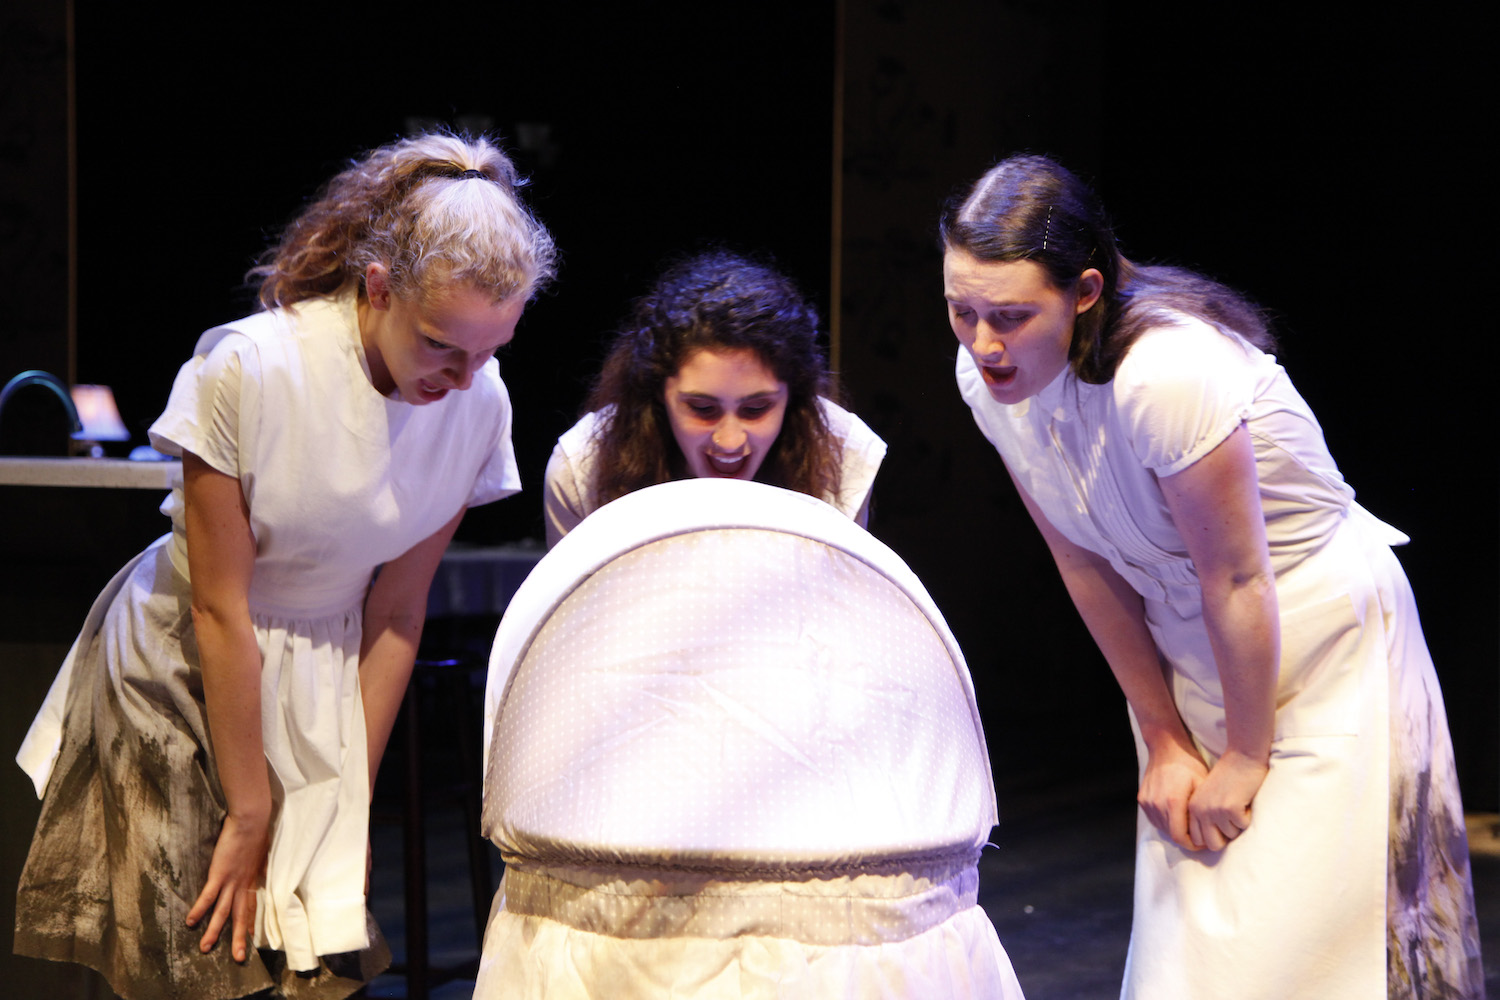 Talia Bornstein, Mira Kessler, and Kylie Underwood in MACBETH. Photo by Mike Lovett.